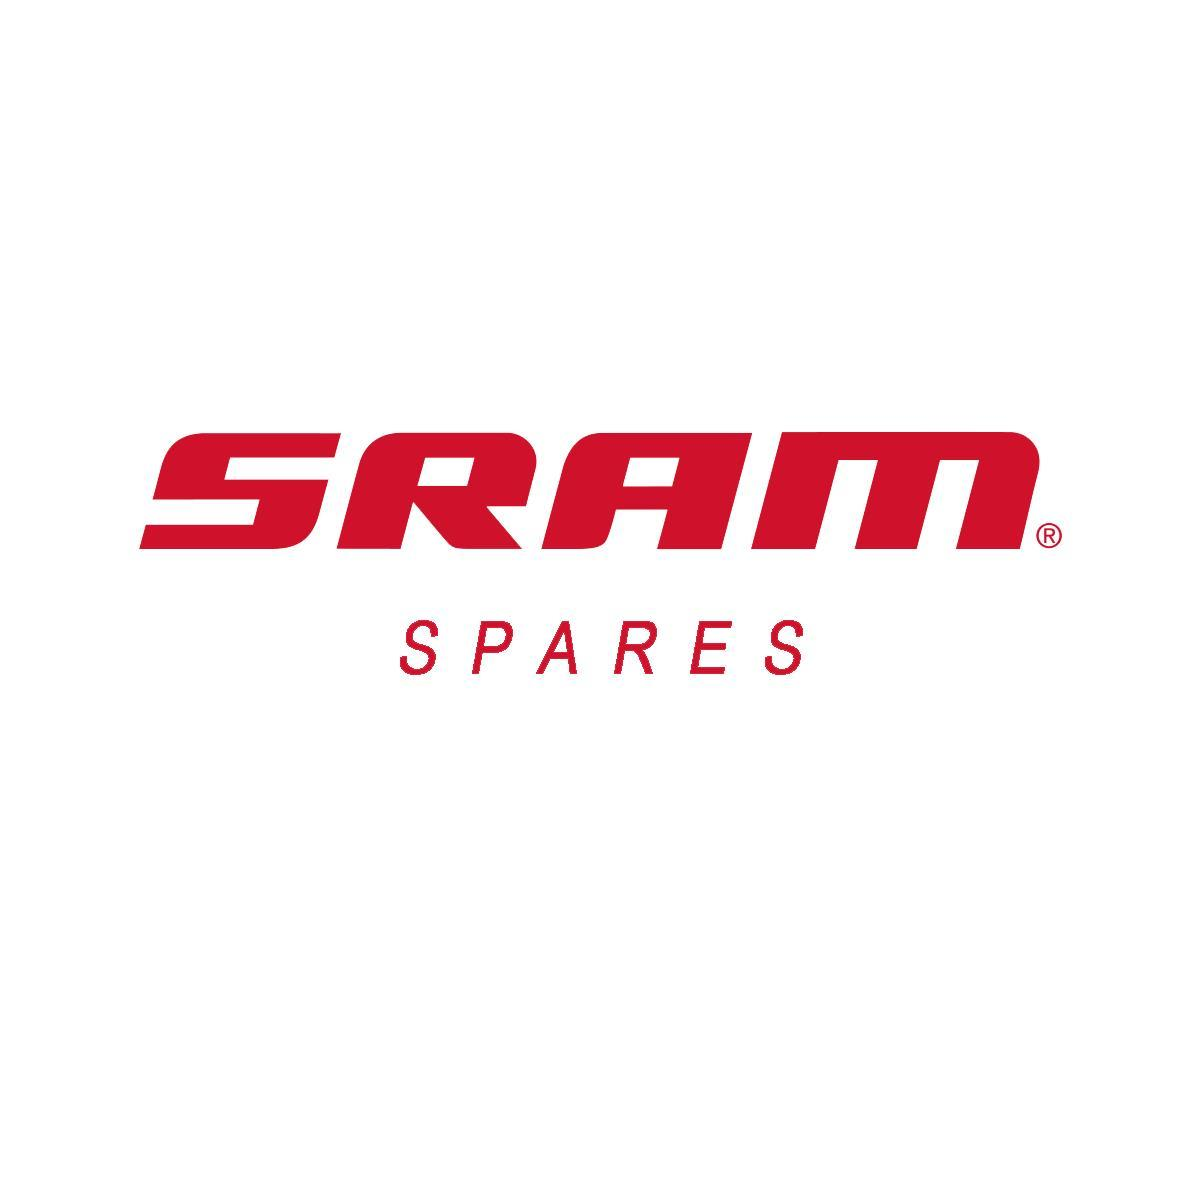 Sram Spare - Wheel Spare Parts Hub Bearing Set Front Double Time Includes 2-23327) - X0 Hubs/rise 60 (b1)/roam 30/roam 40/roam 50/60(b1)/rail 40